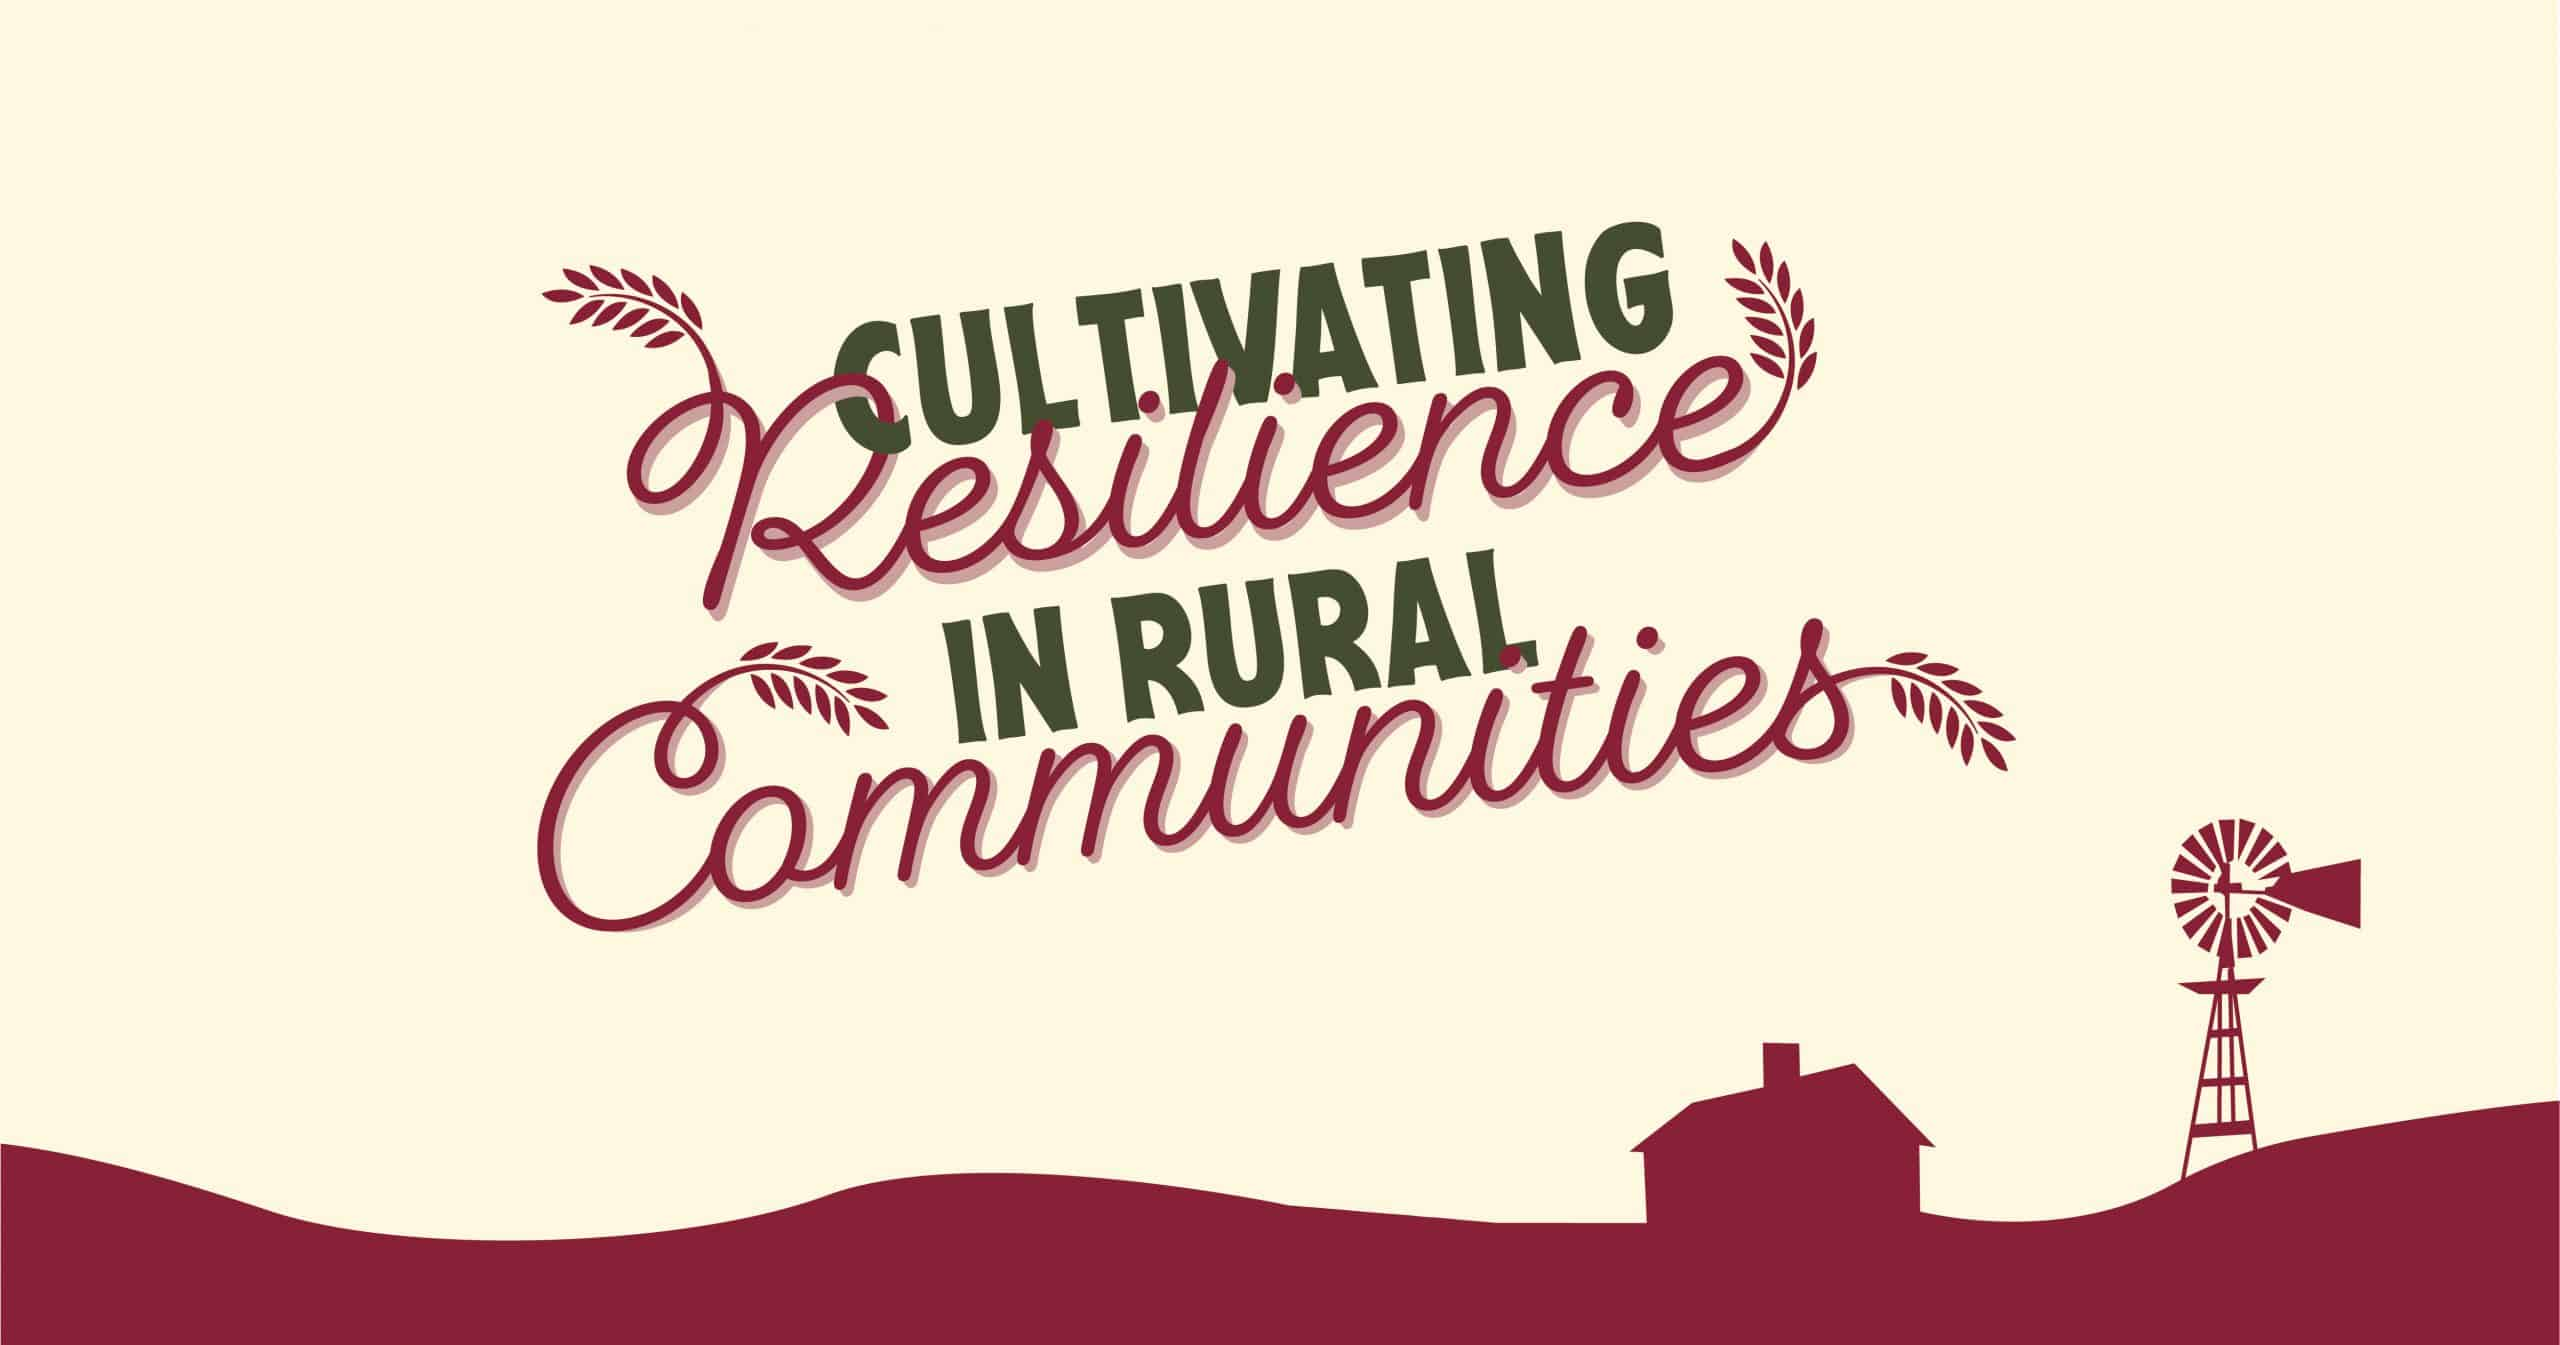 Cultivating Resilience in Rural Communities Toolkit